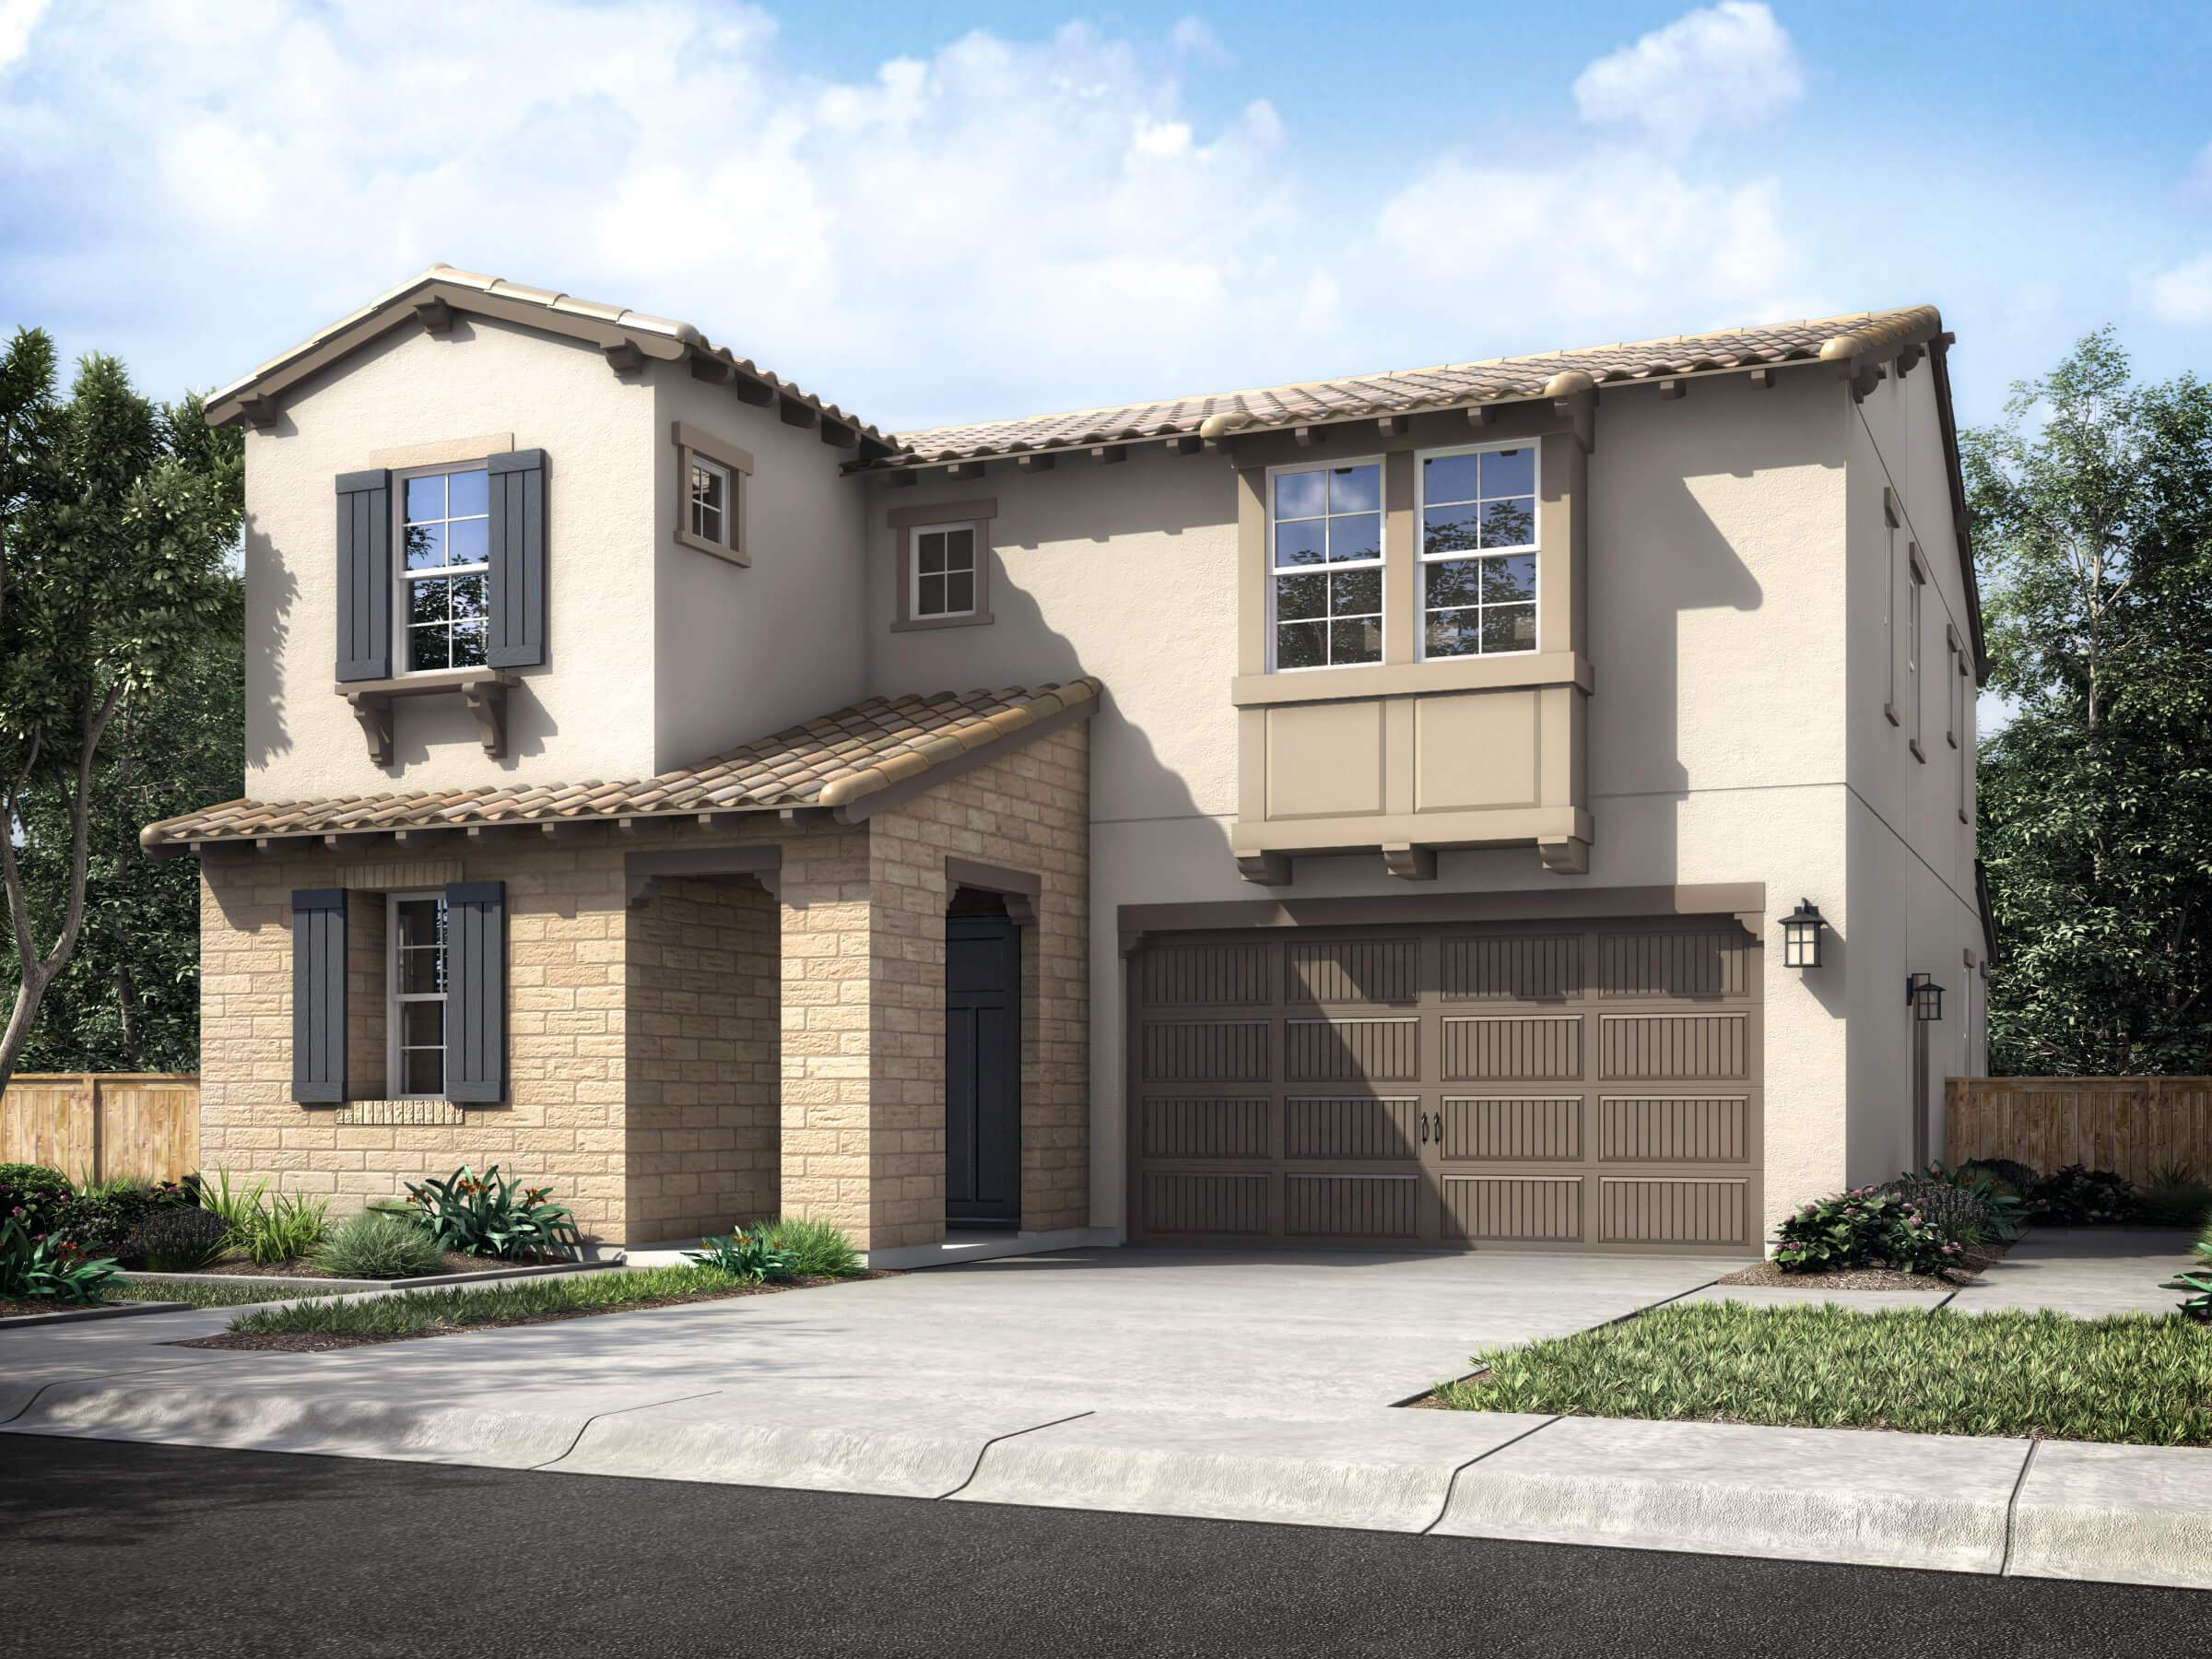 Single Family for Sale at The Covey - Residence 3 10061 Elizabeth Lane Buena Park, California 90620 United States